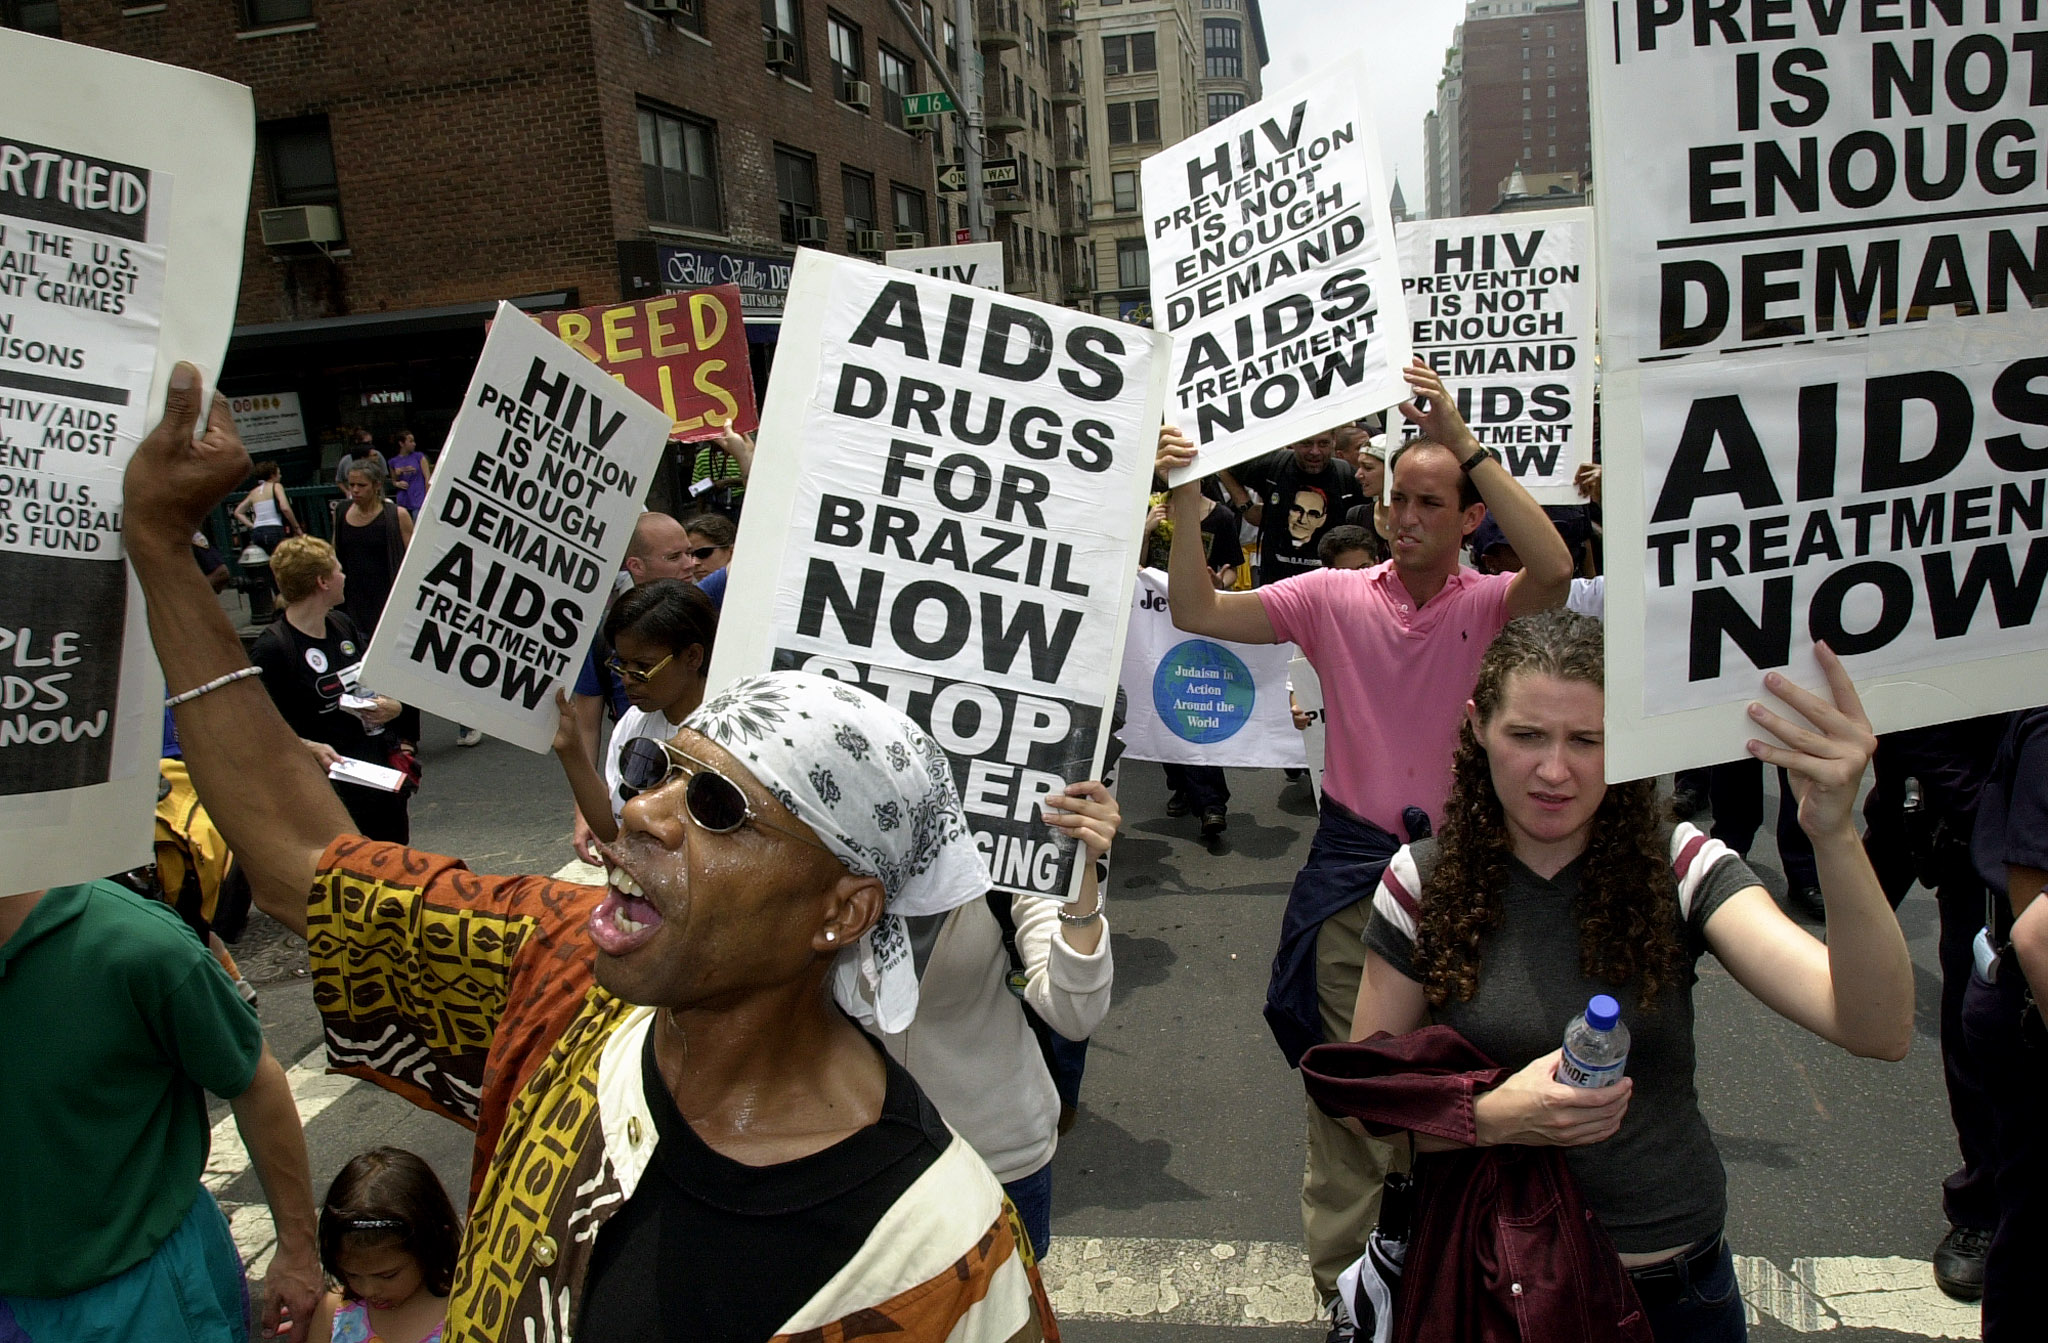 AIDS activists, church groups and anti-debt activists shout slogans as they march up Sixth Avenue in New York on June 23, 2001. (STAN HONDA/AFP via Getty Images)